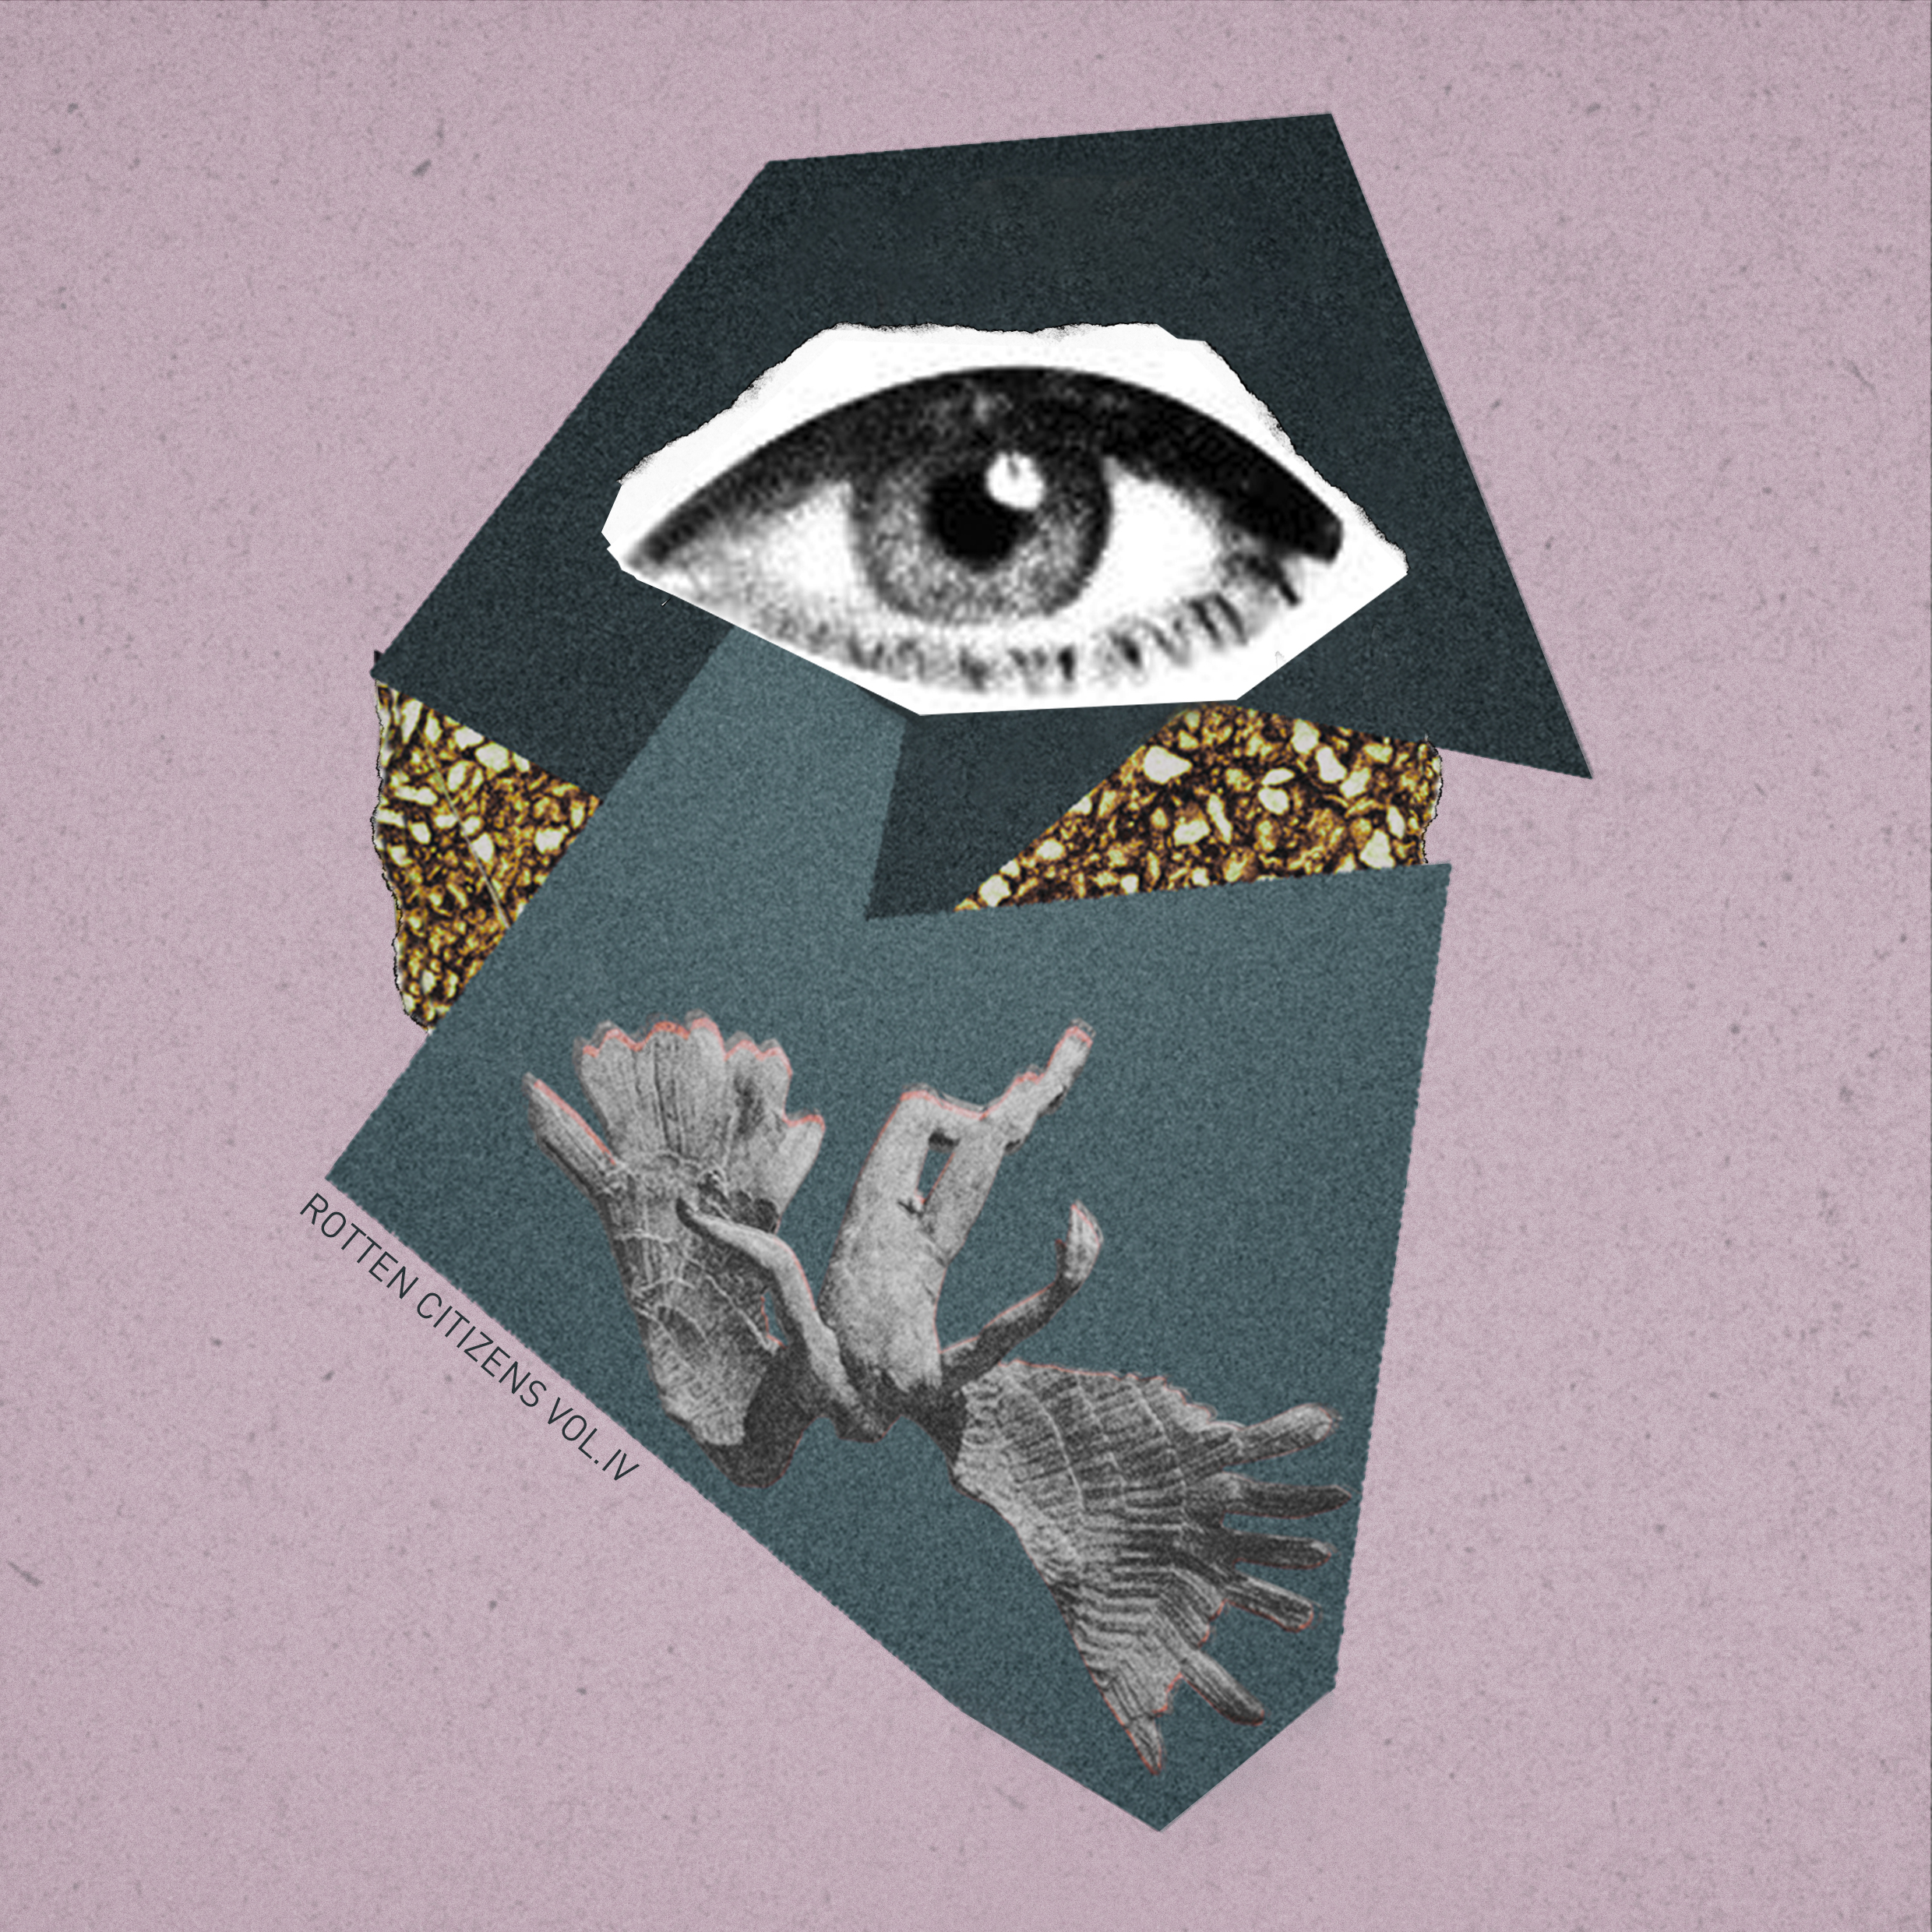 PREMIERE: Lebollet - Ruined King [Rotten City Records]